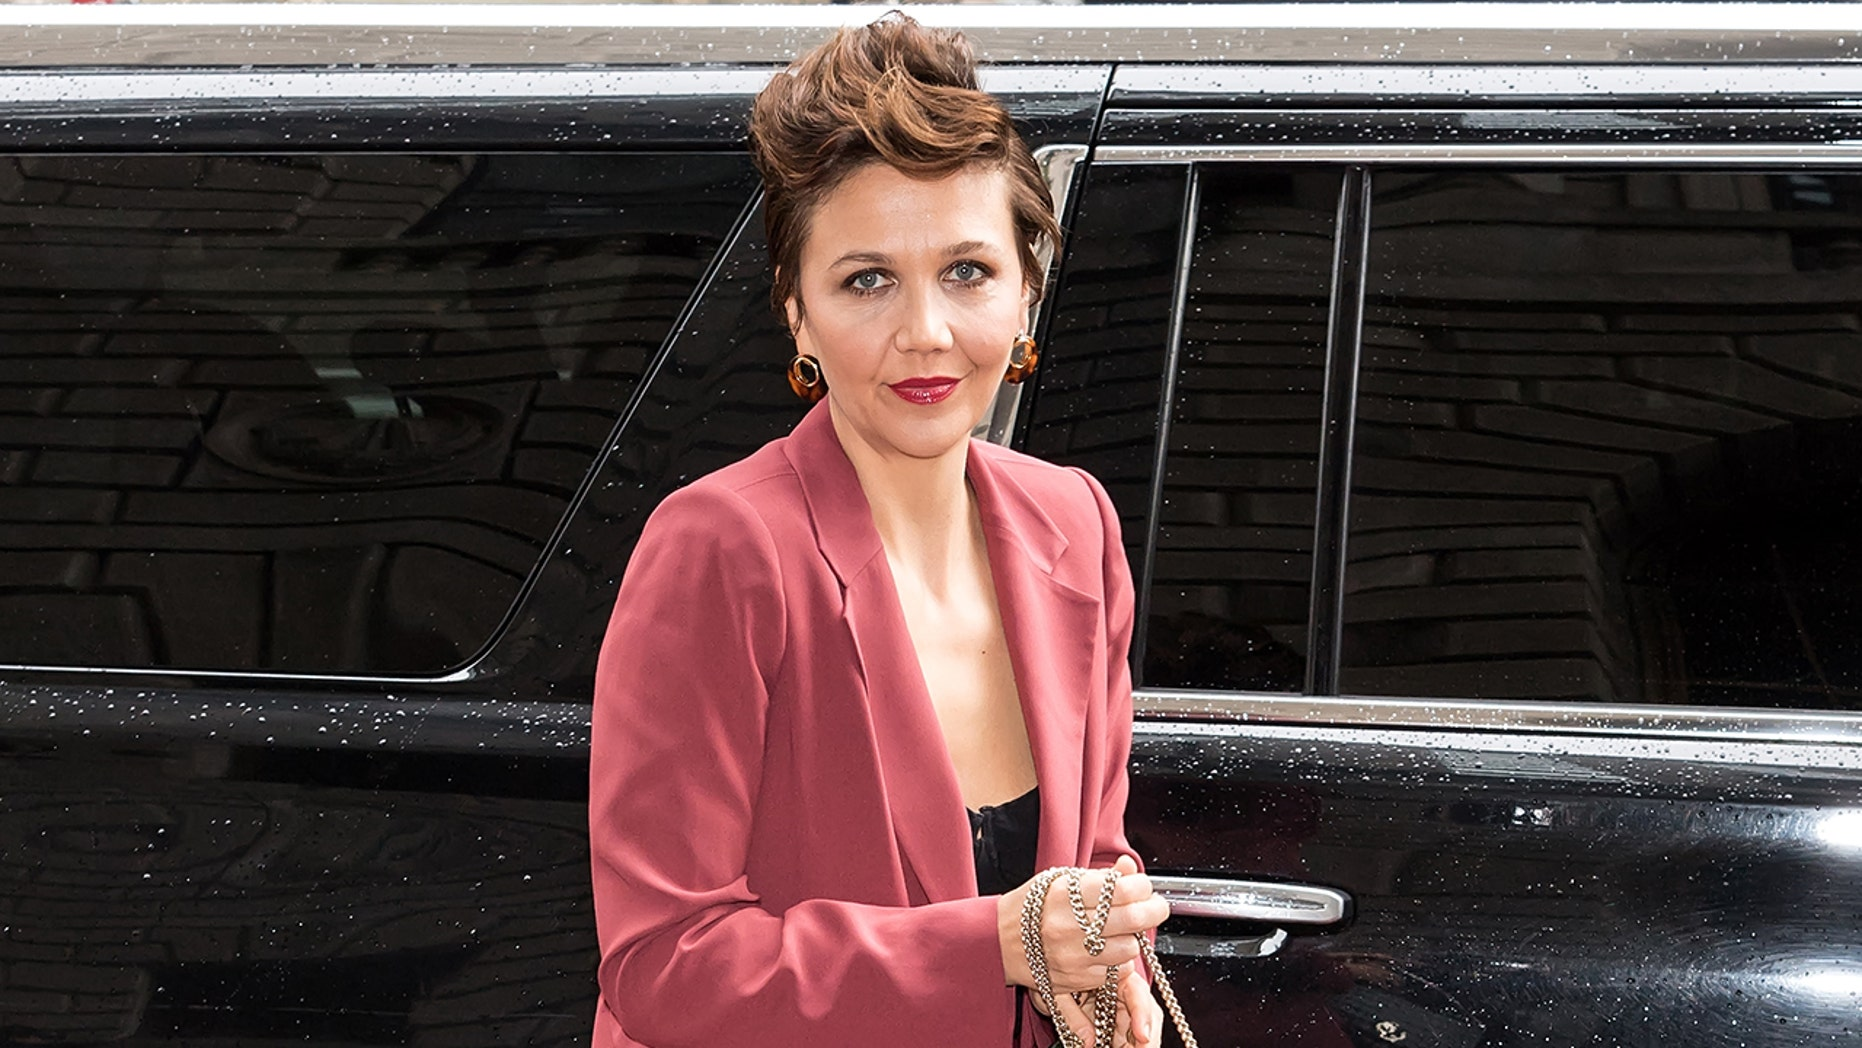 Actress Maggie Gyllenhaal fired back at a writer who commented on her high-pitched 'cartoonish' voice.